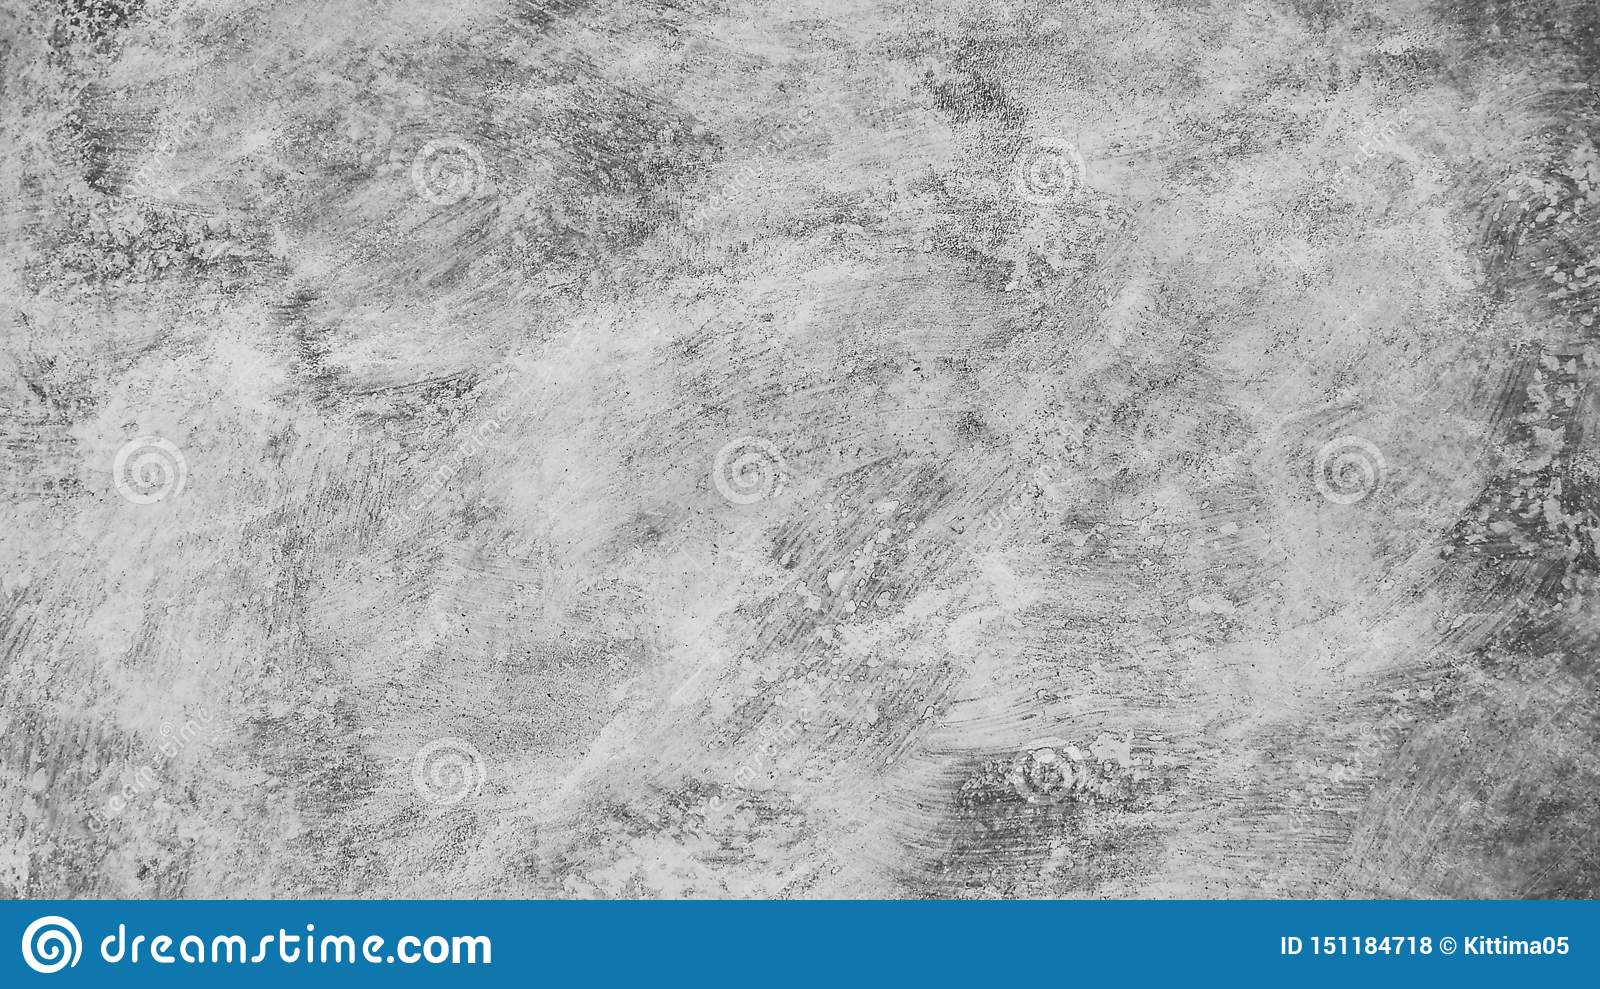 abstract background with old gray wall